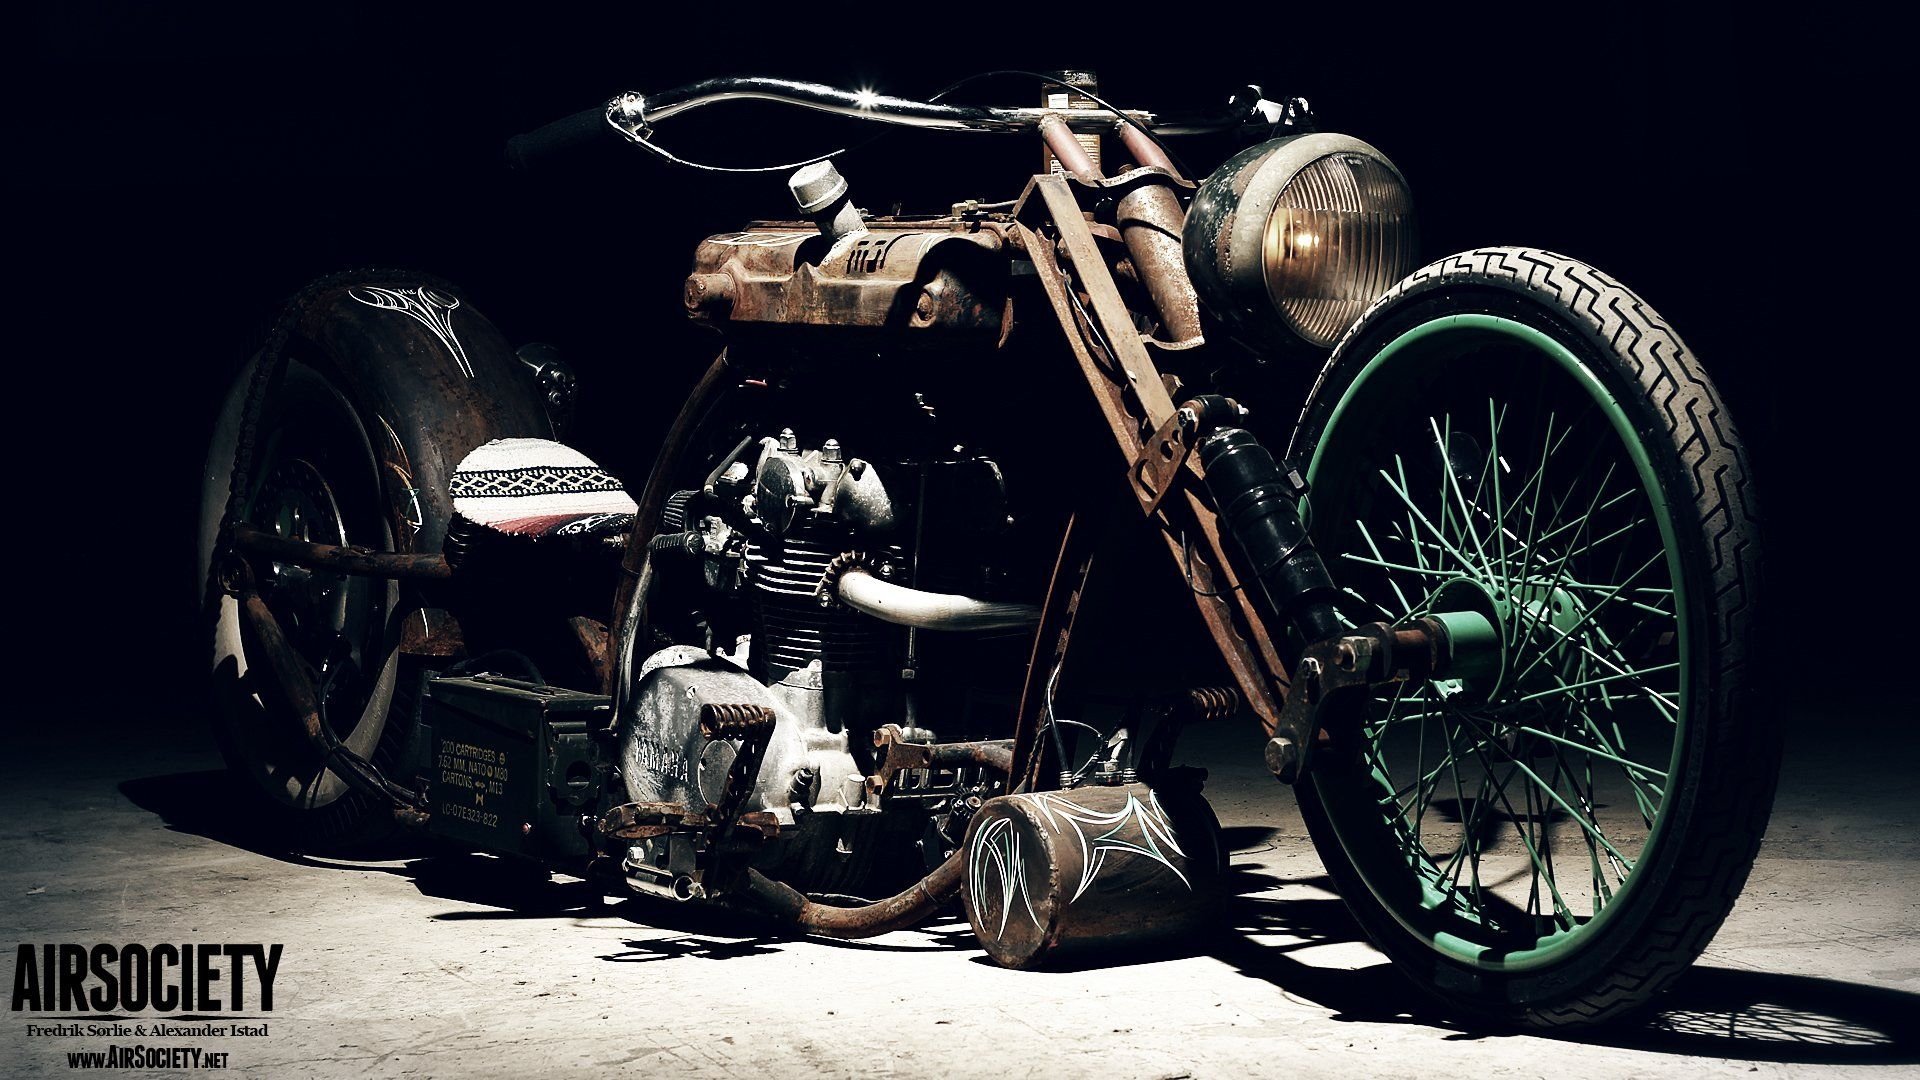 Chopper Motorcycles Wallpapers   Top Chopper Motorcycles 1920x1080